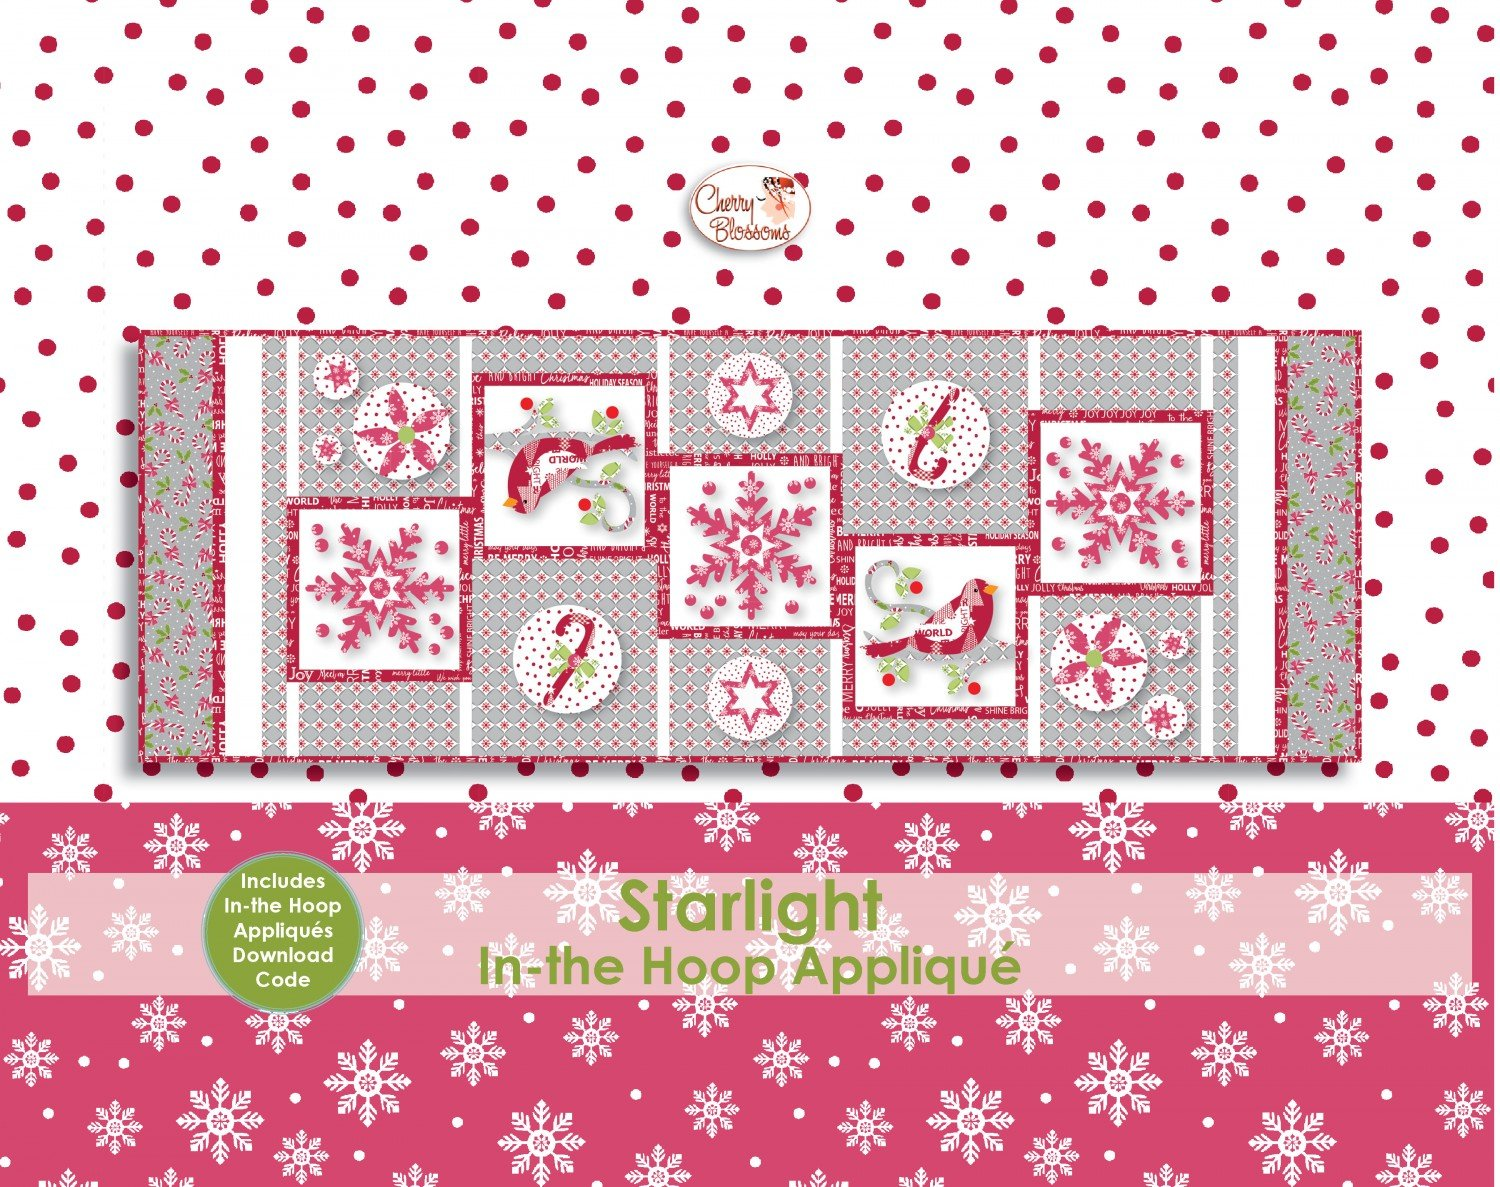 Starlight with In the Hoop Applique